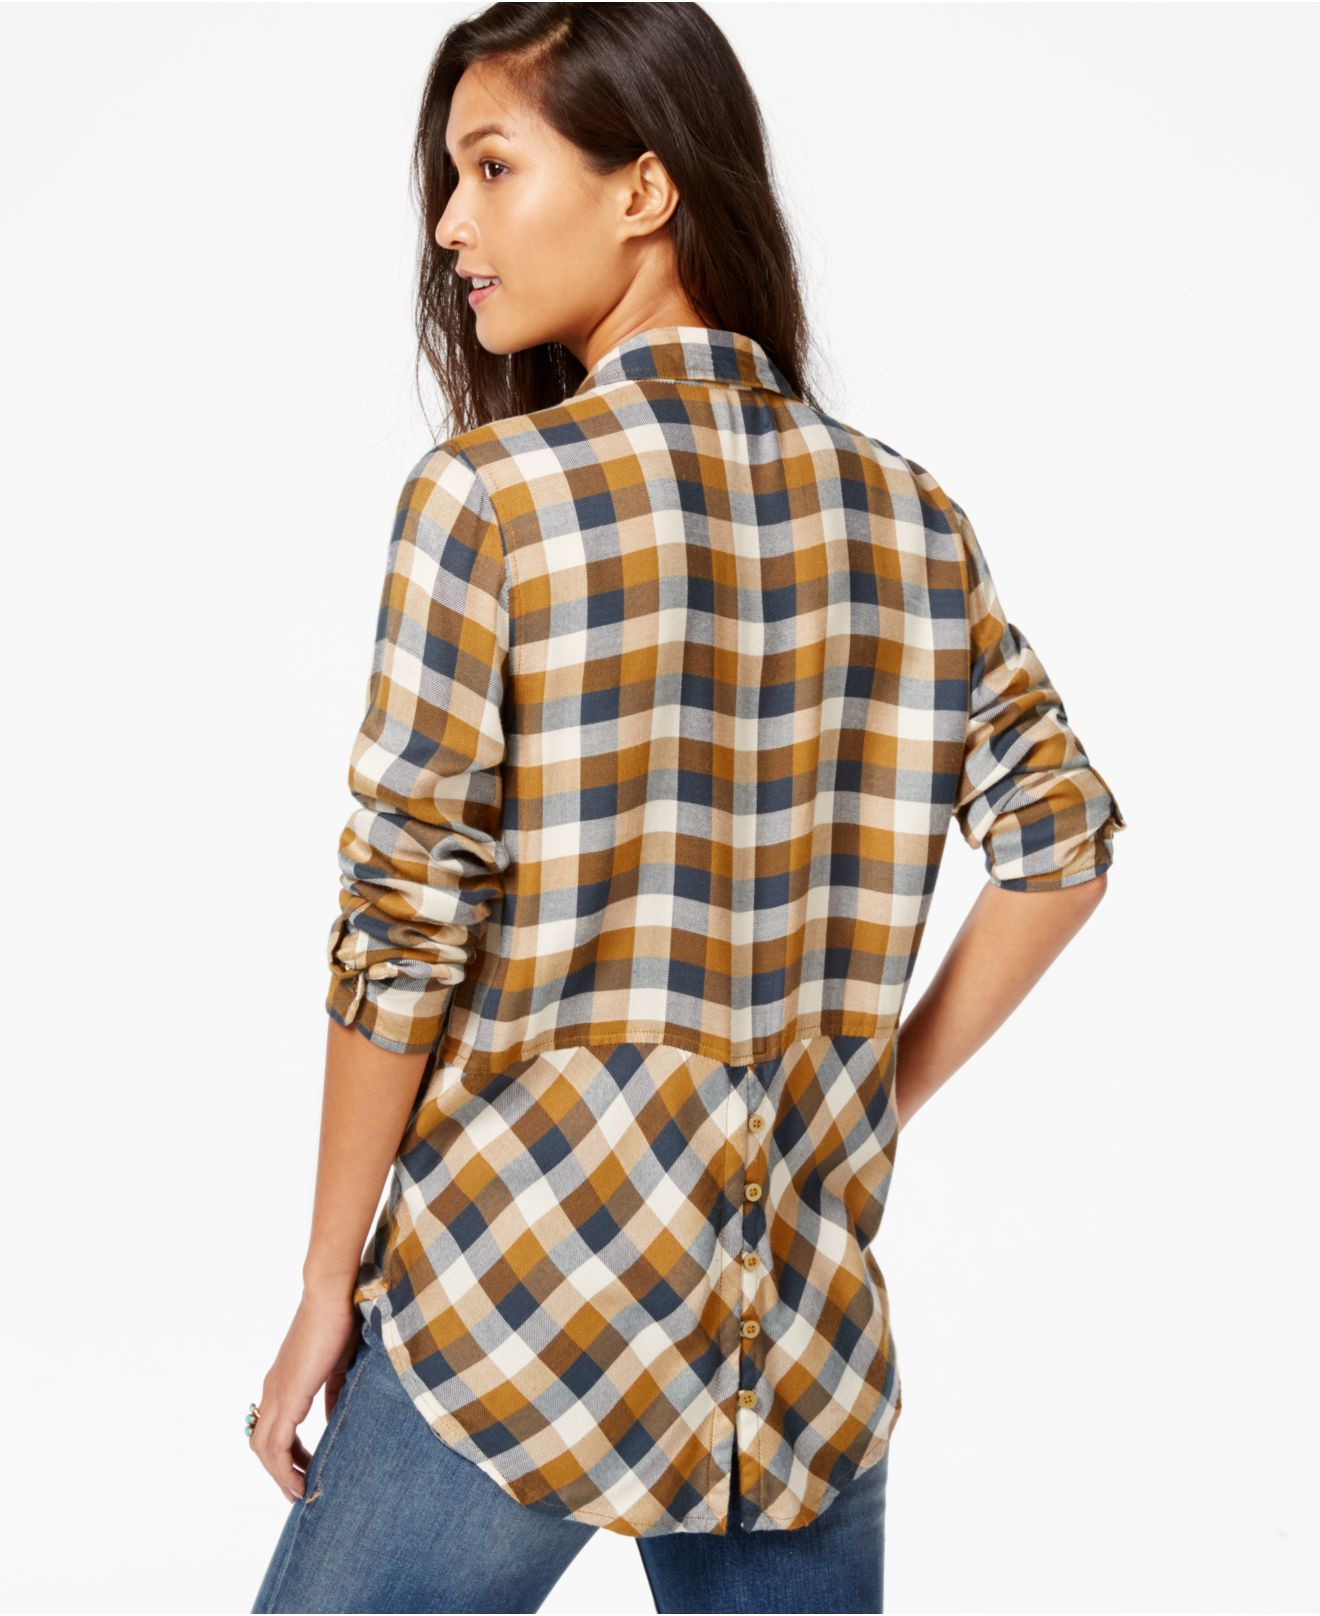 lyst lucky brand lucky brand long sleeve plaid shirt in. Black Bedroom Furniture Sets. Home Design Ideas